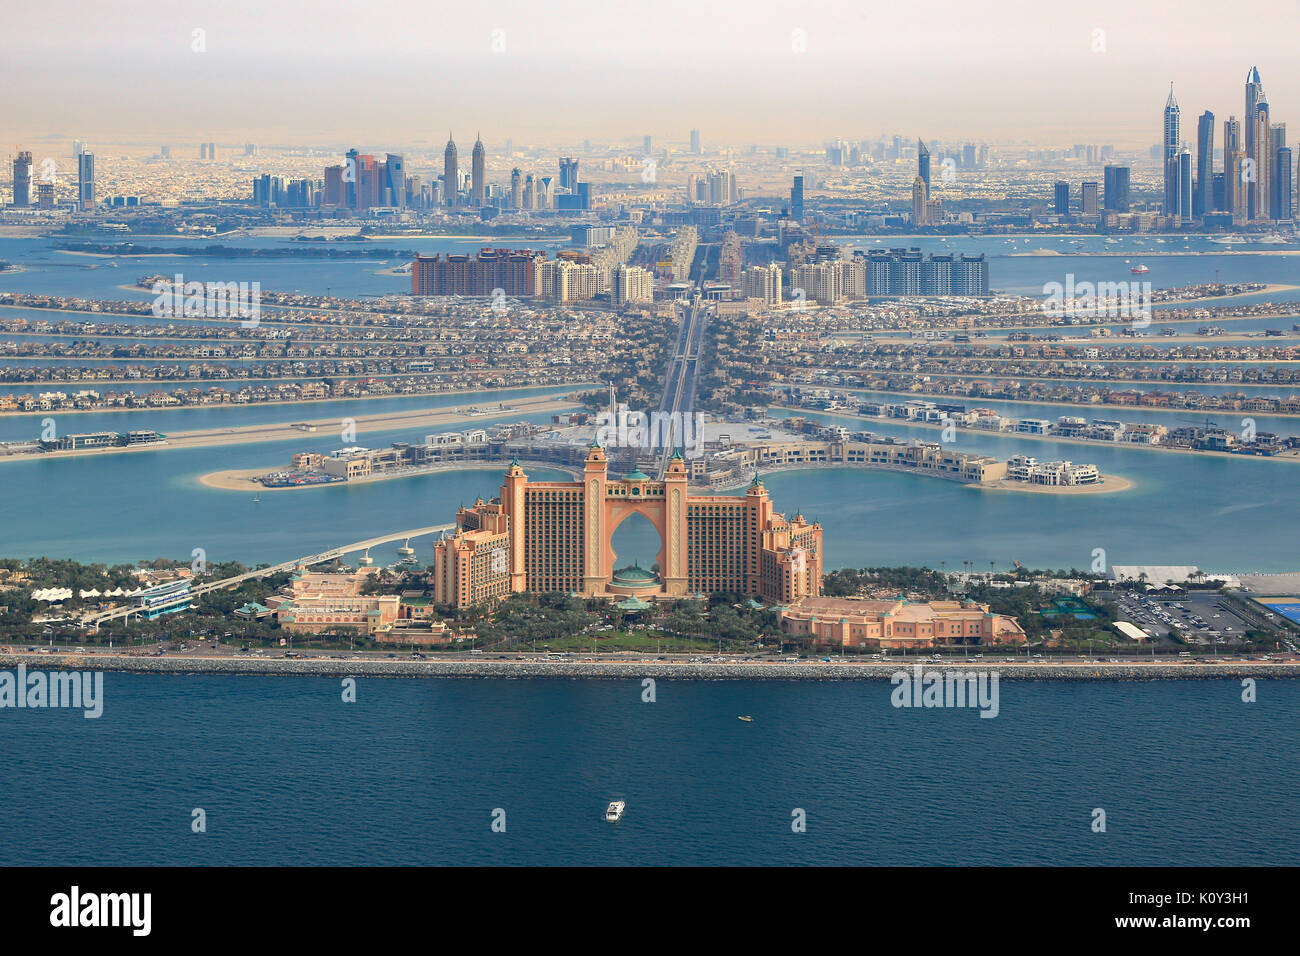 Dubai Atlantis Hotel The Palm Jumeirah Island aerial view photography UAE - Stock Image